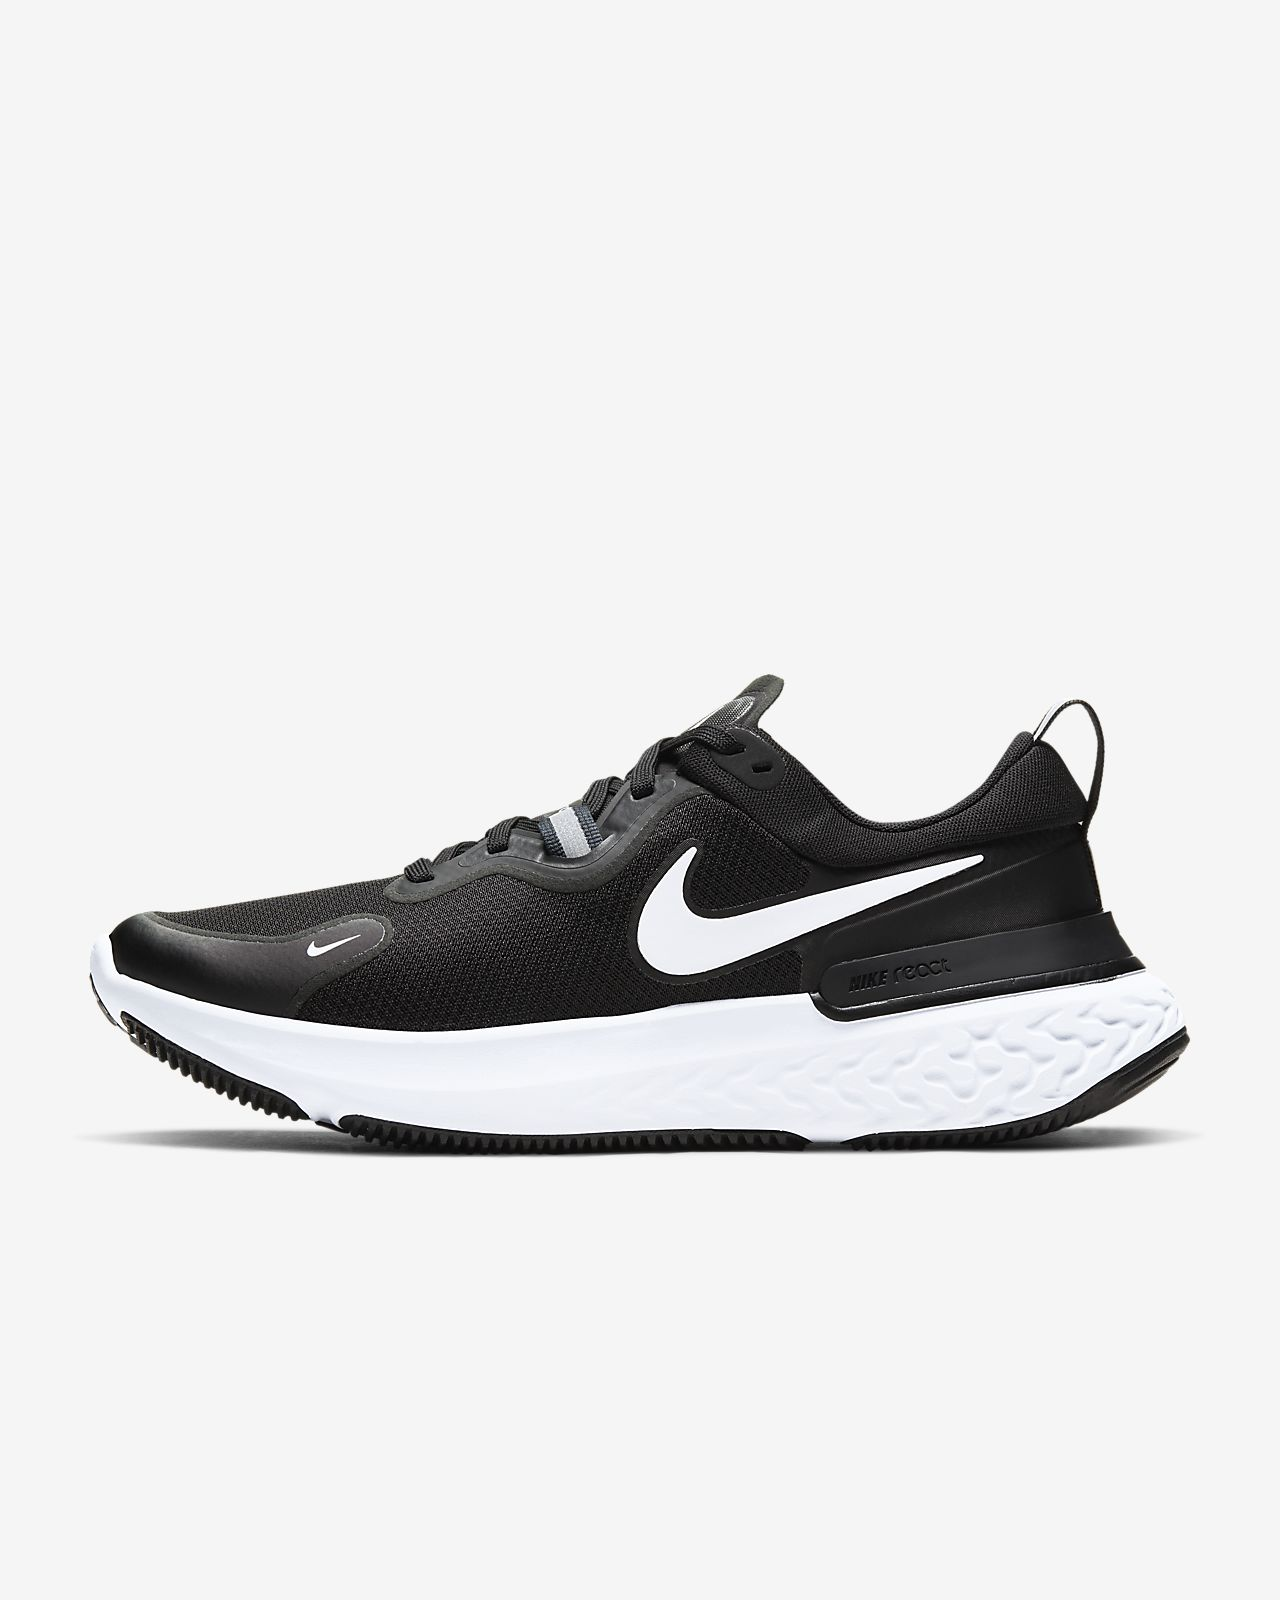 Nike React Miler Men's Running Shoe